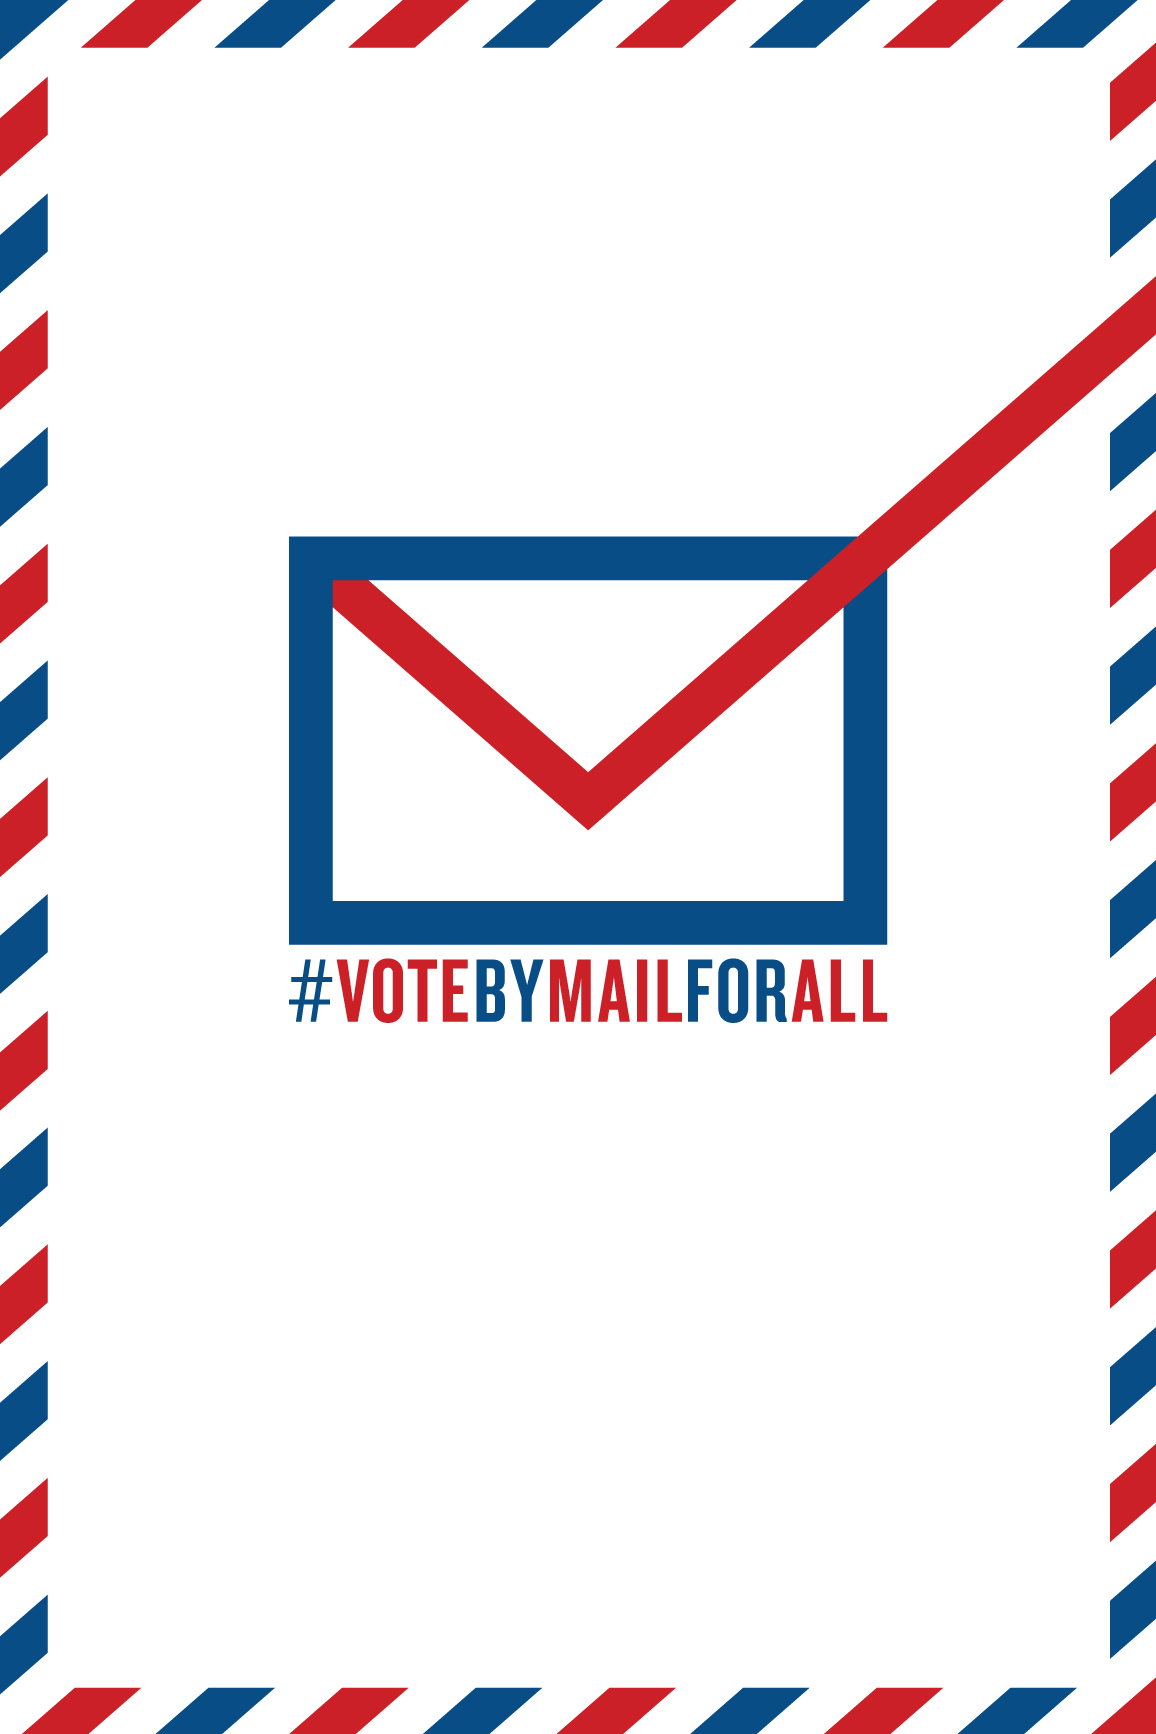 Vote By Mail For All